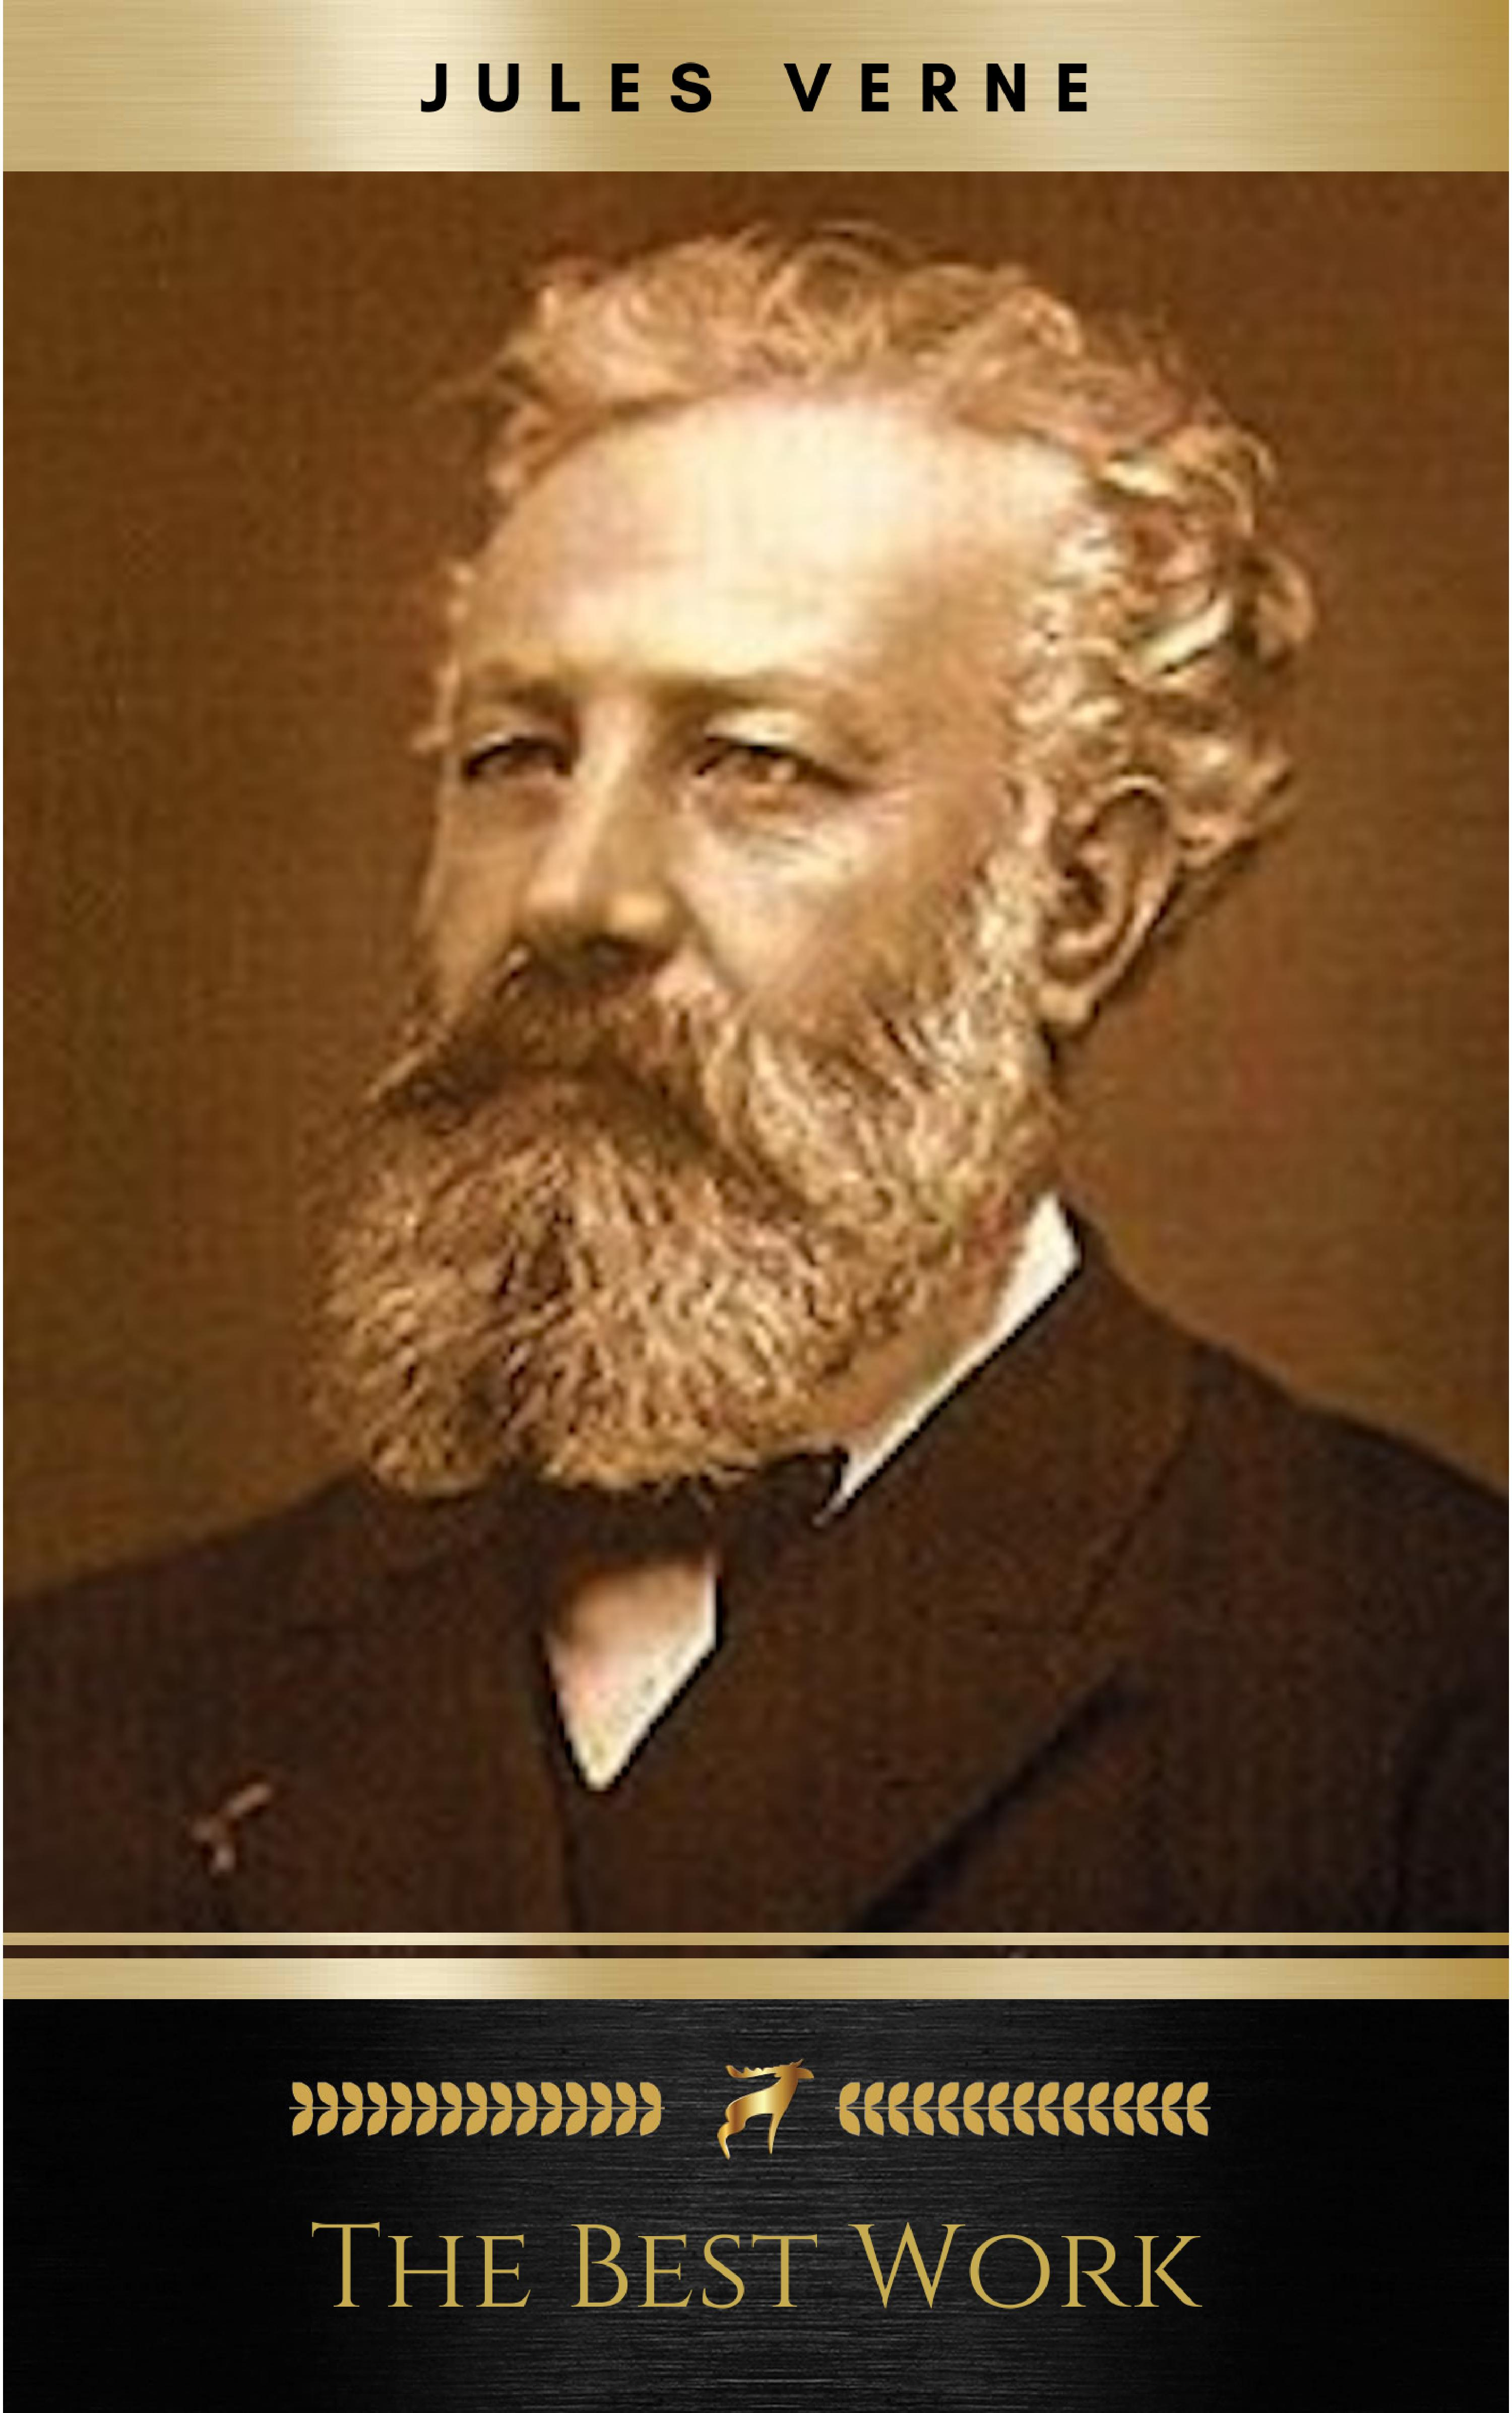 jules verne the classics novels collection golden deer classics included 19 novels 20000 leagues under the seaaround the world in 80 daysa journey int